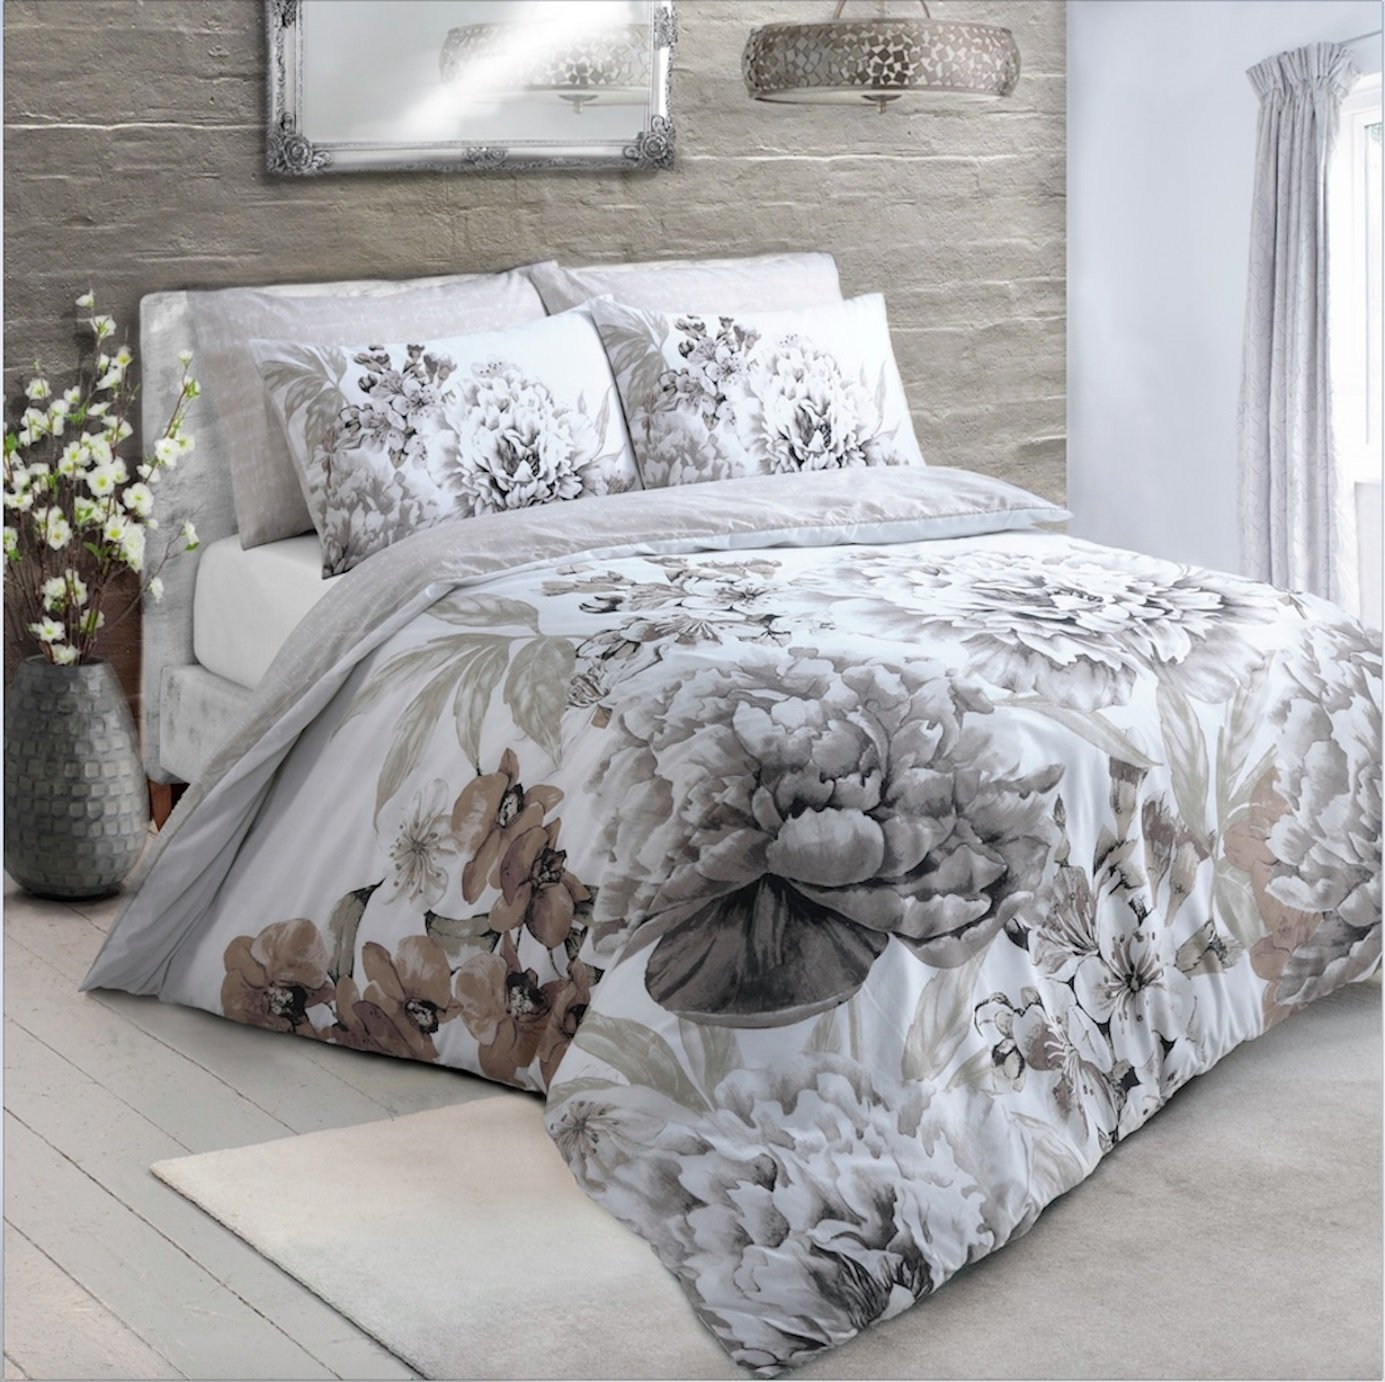 Argos Home Natural Floral Bloom Bedding Set - Kingsize